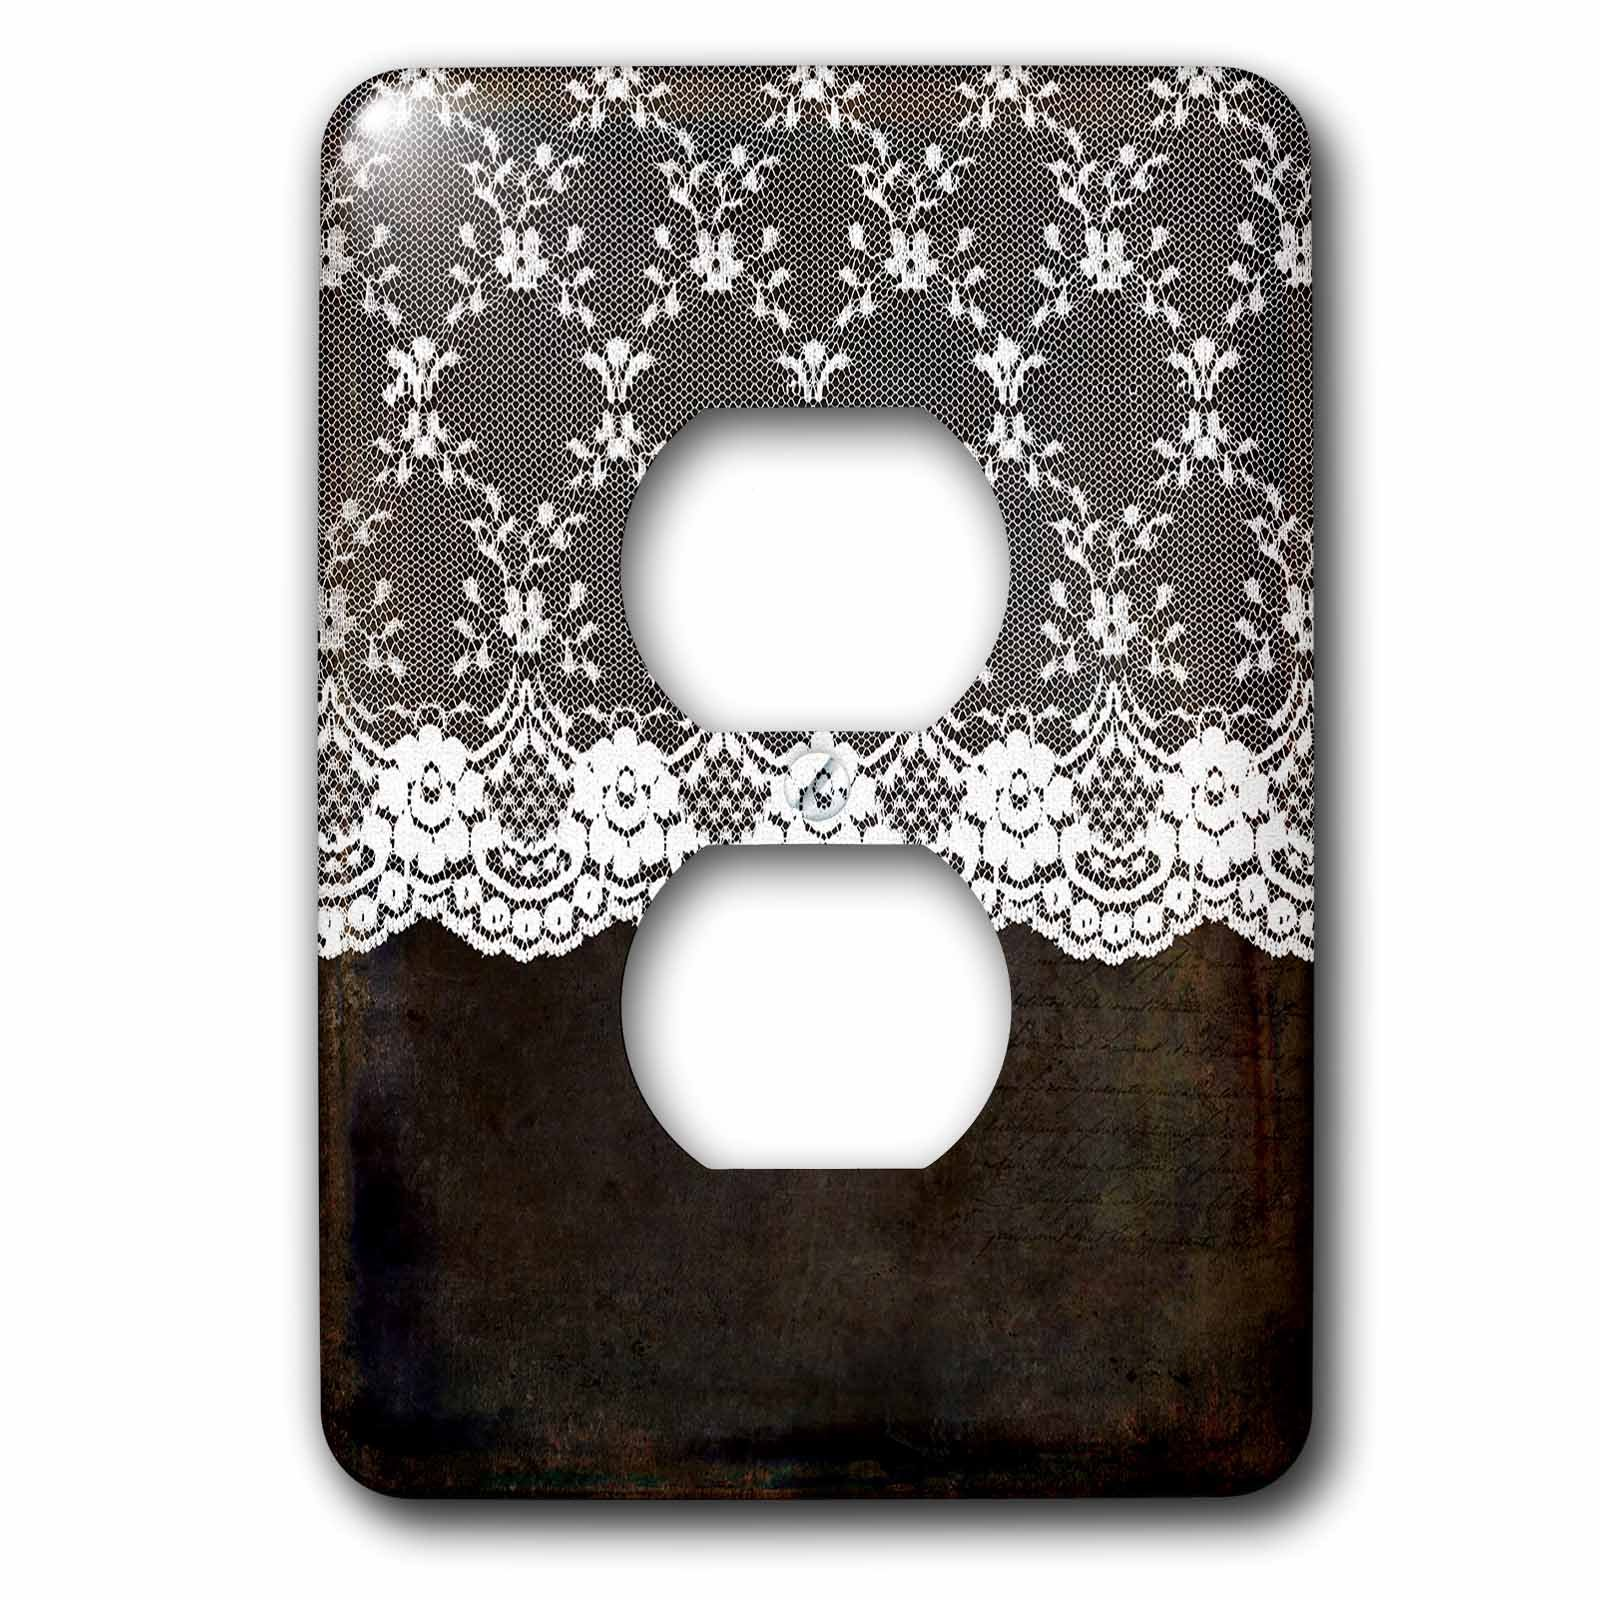 3dRose Uta Naumann Vintage Lace Collection - White Floral Flower Luxury Lace on Dark Grunge Background - Light Switch Covers - 2 plug outlet cover (lsp_255592_6)